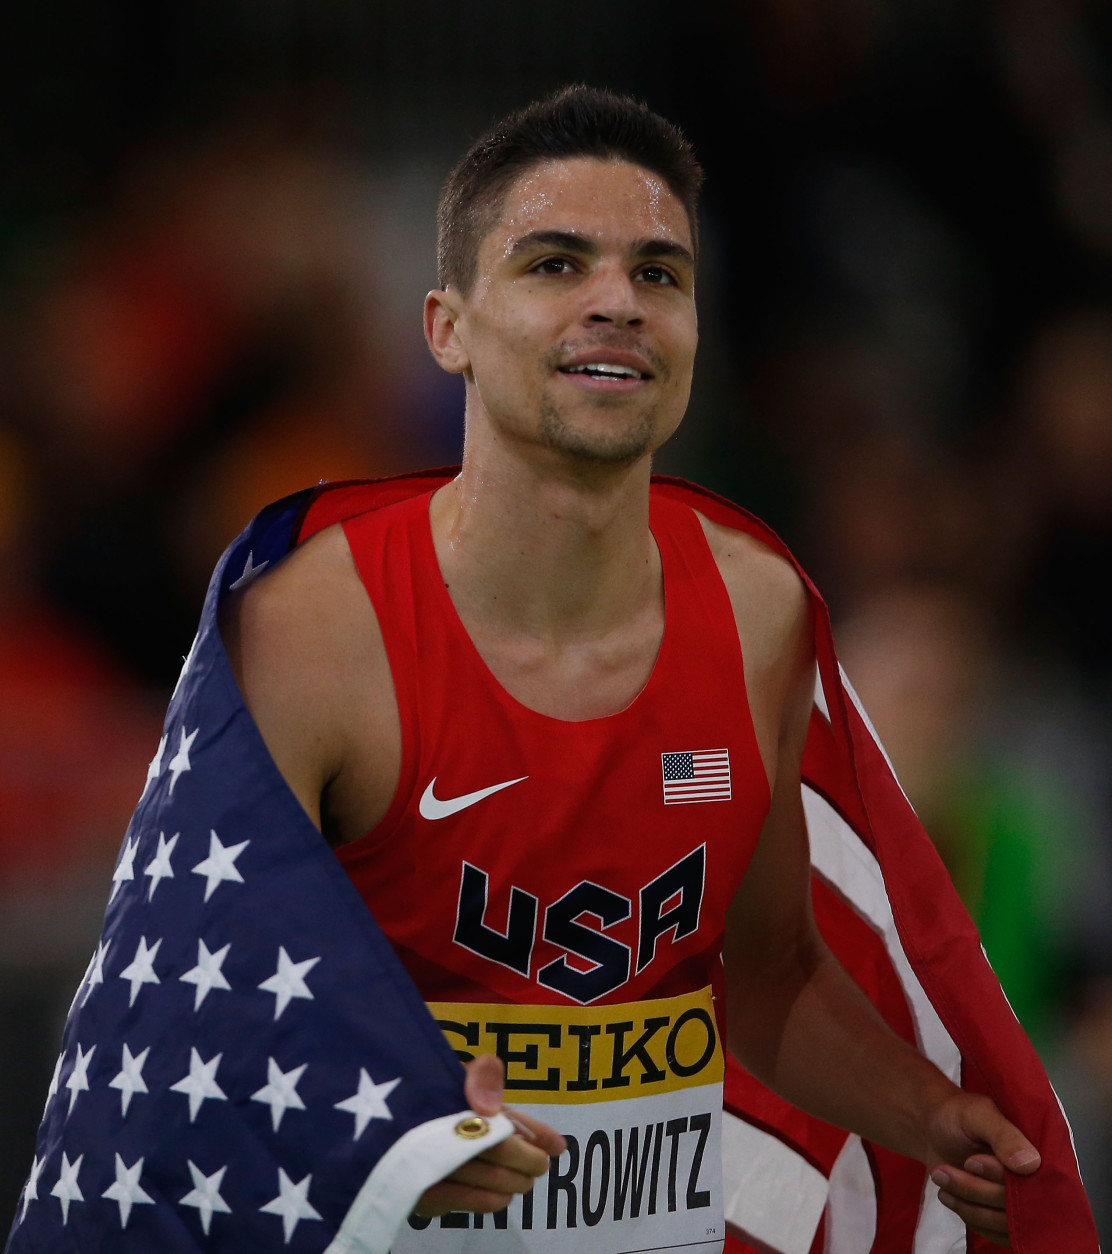 PORTLAND, OR - MARCH 20:  Matthew Centrowitz of the United States wins gold in the Men's 1500 Metres Final during day four of the IAAF World Indoor Championships at Oregon Convention Center on March 20, 2016 in Portland, Oregon.  (Photo by Christian Petersen/Getty Images for IAAF)